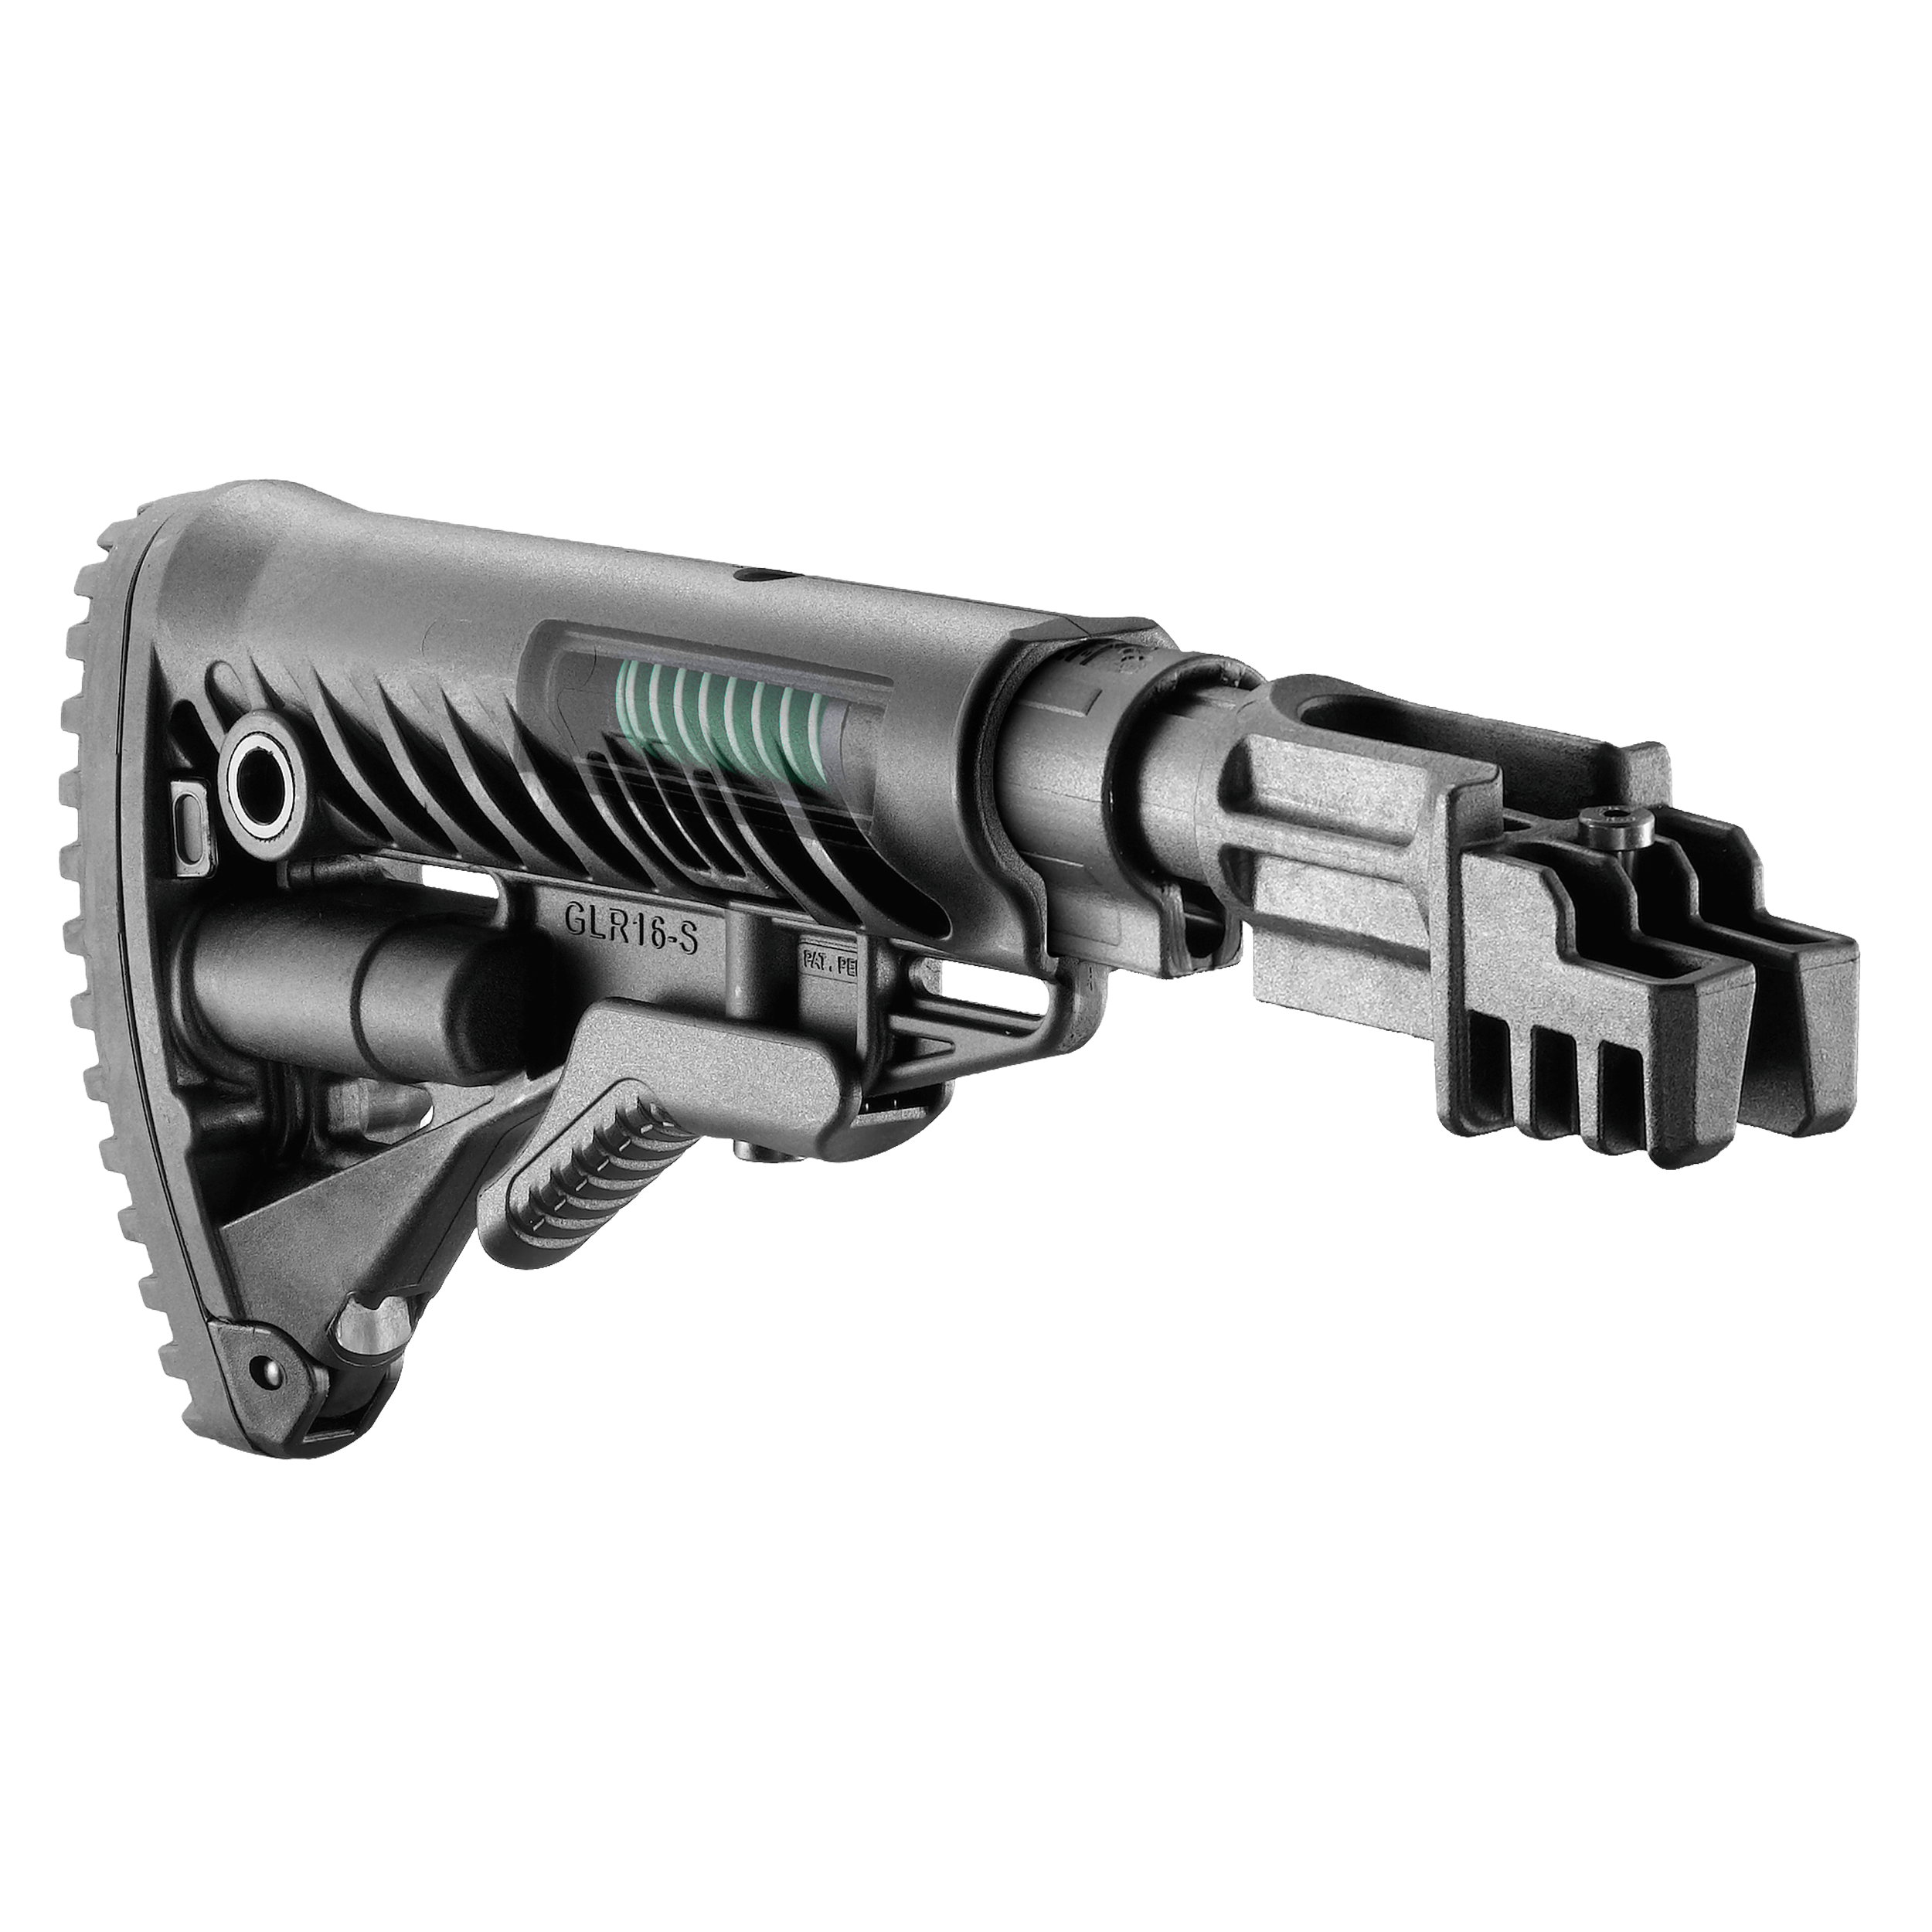 AK47 recoil reducing system / AR15 Style